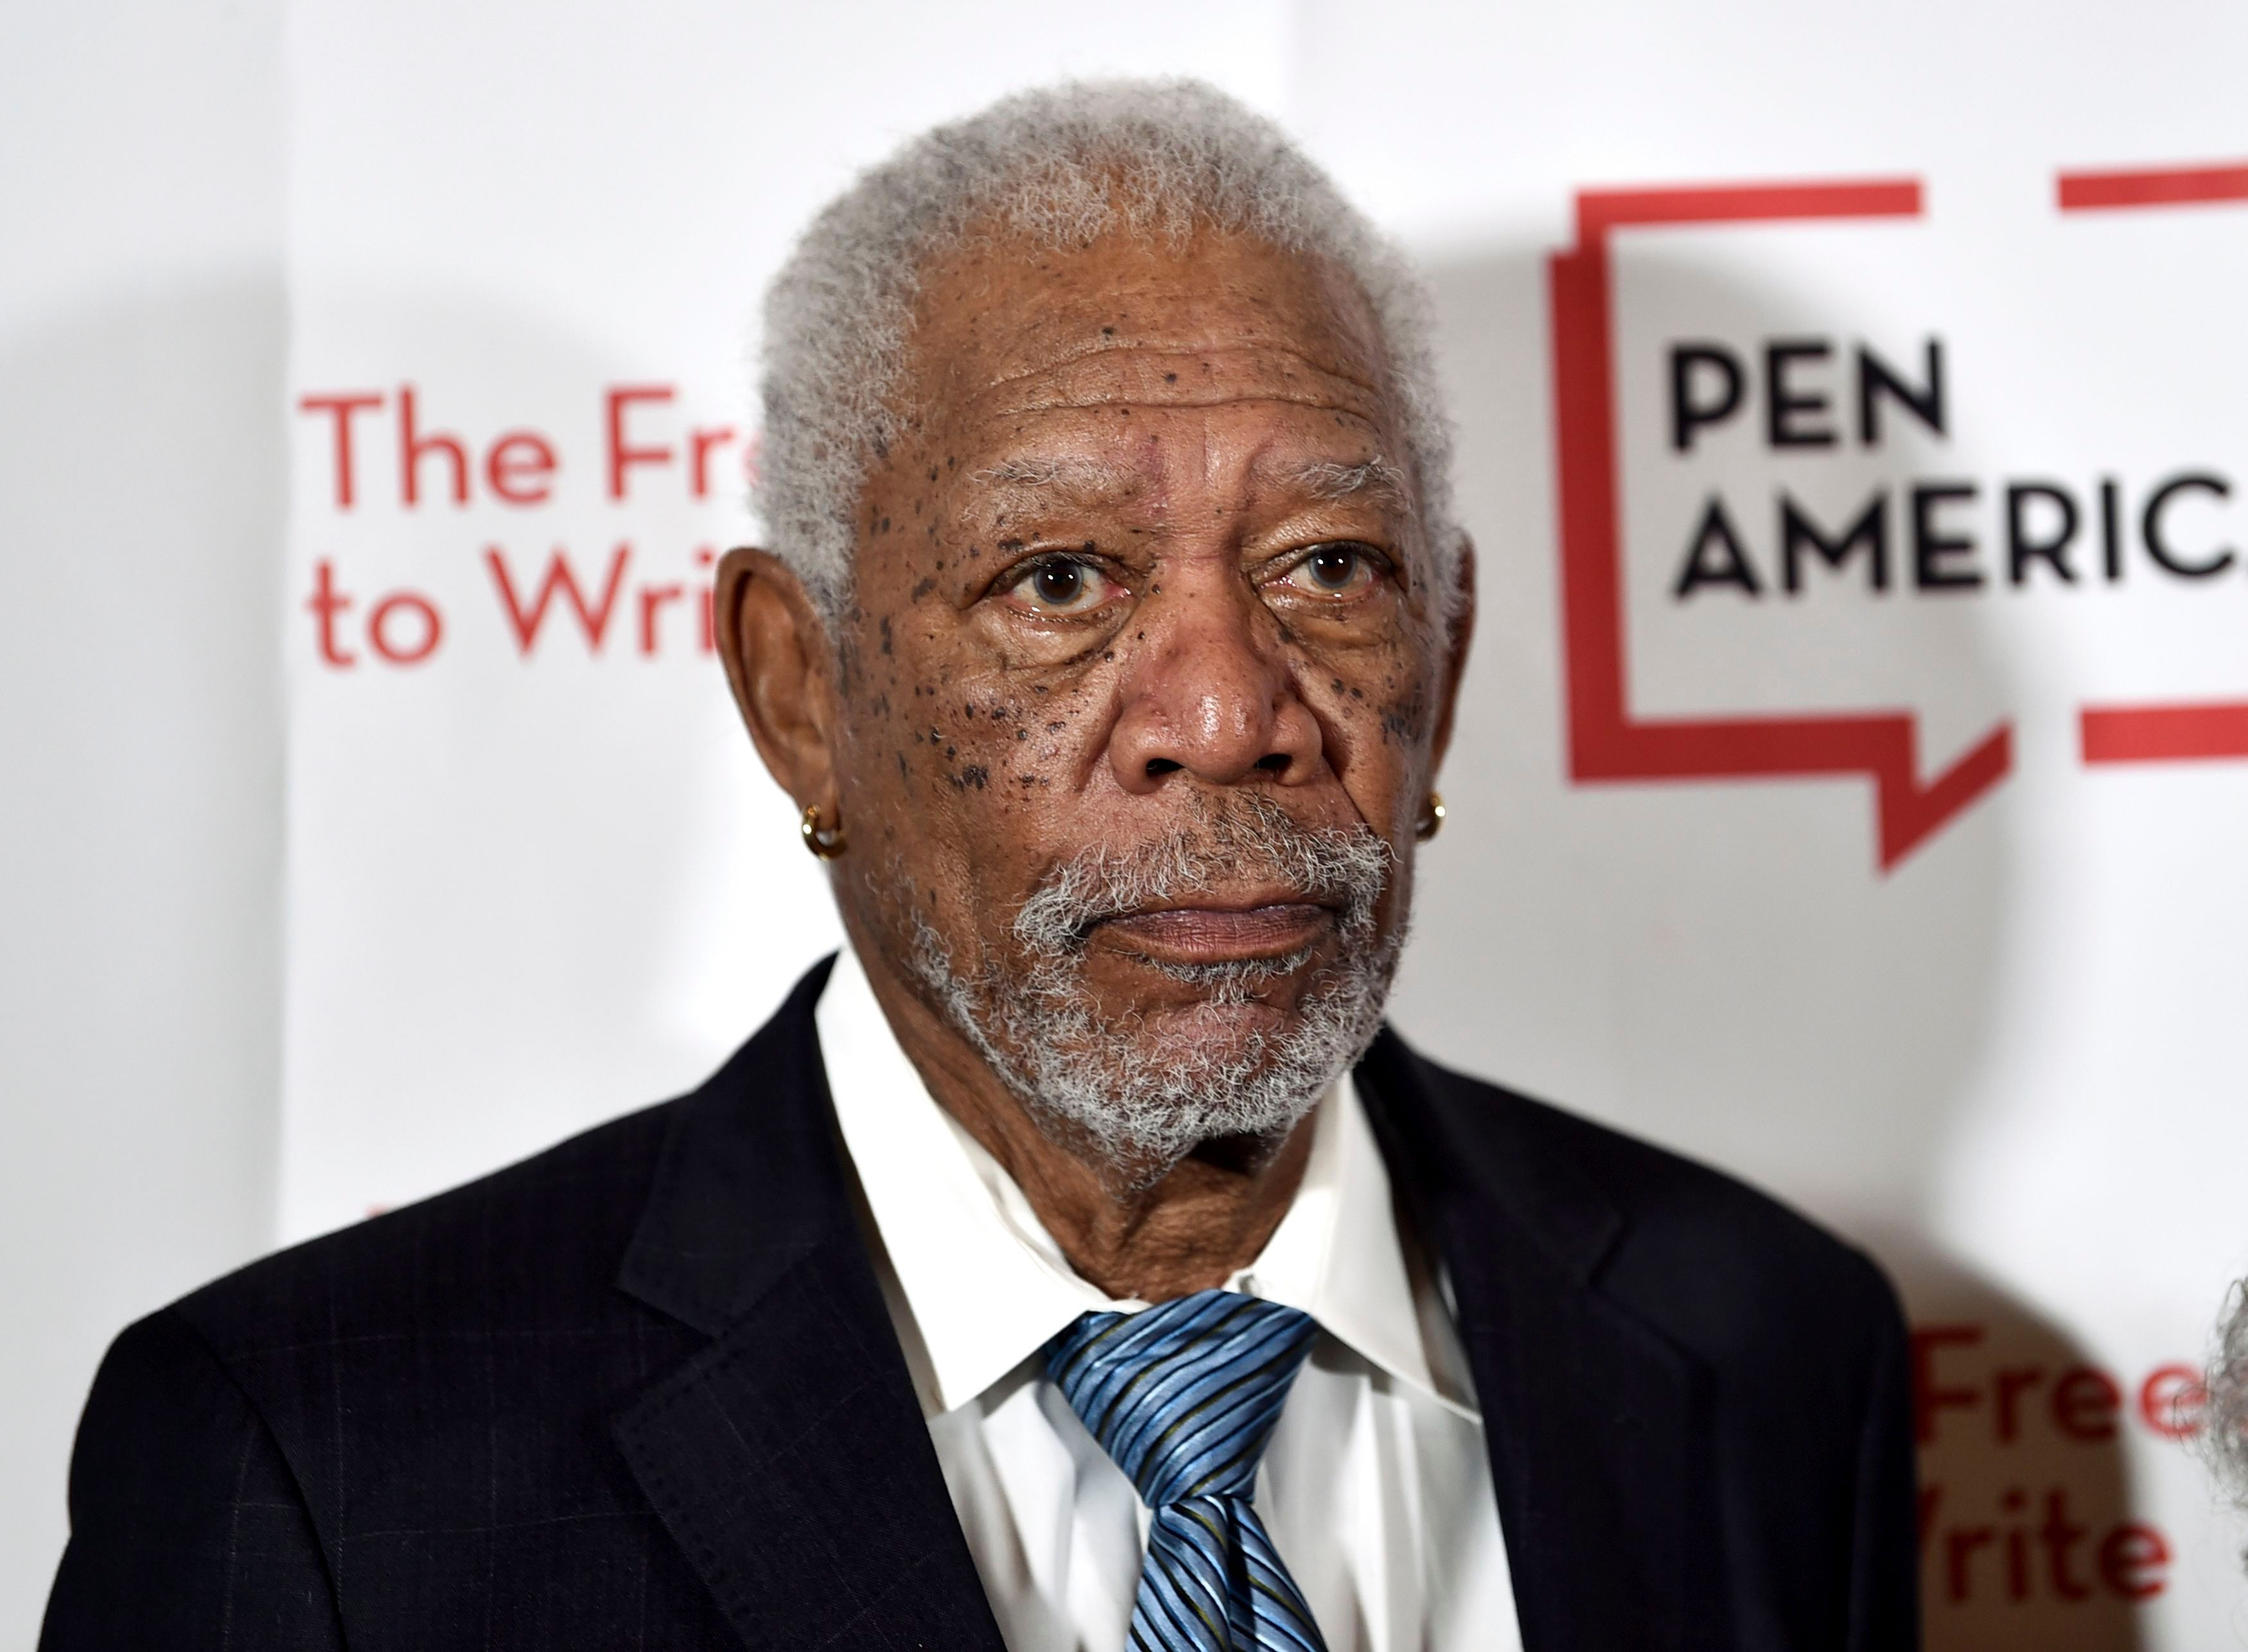 Actor Morgan Freeman attends the 2018 PEN Literary Gala at the American Museum of Natural History, in New York2018 PEN Literary Gala, New York, USA - 22 May 2018